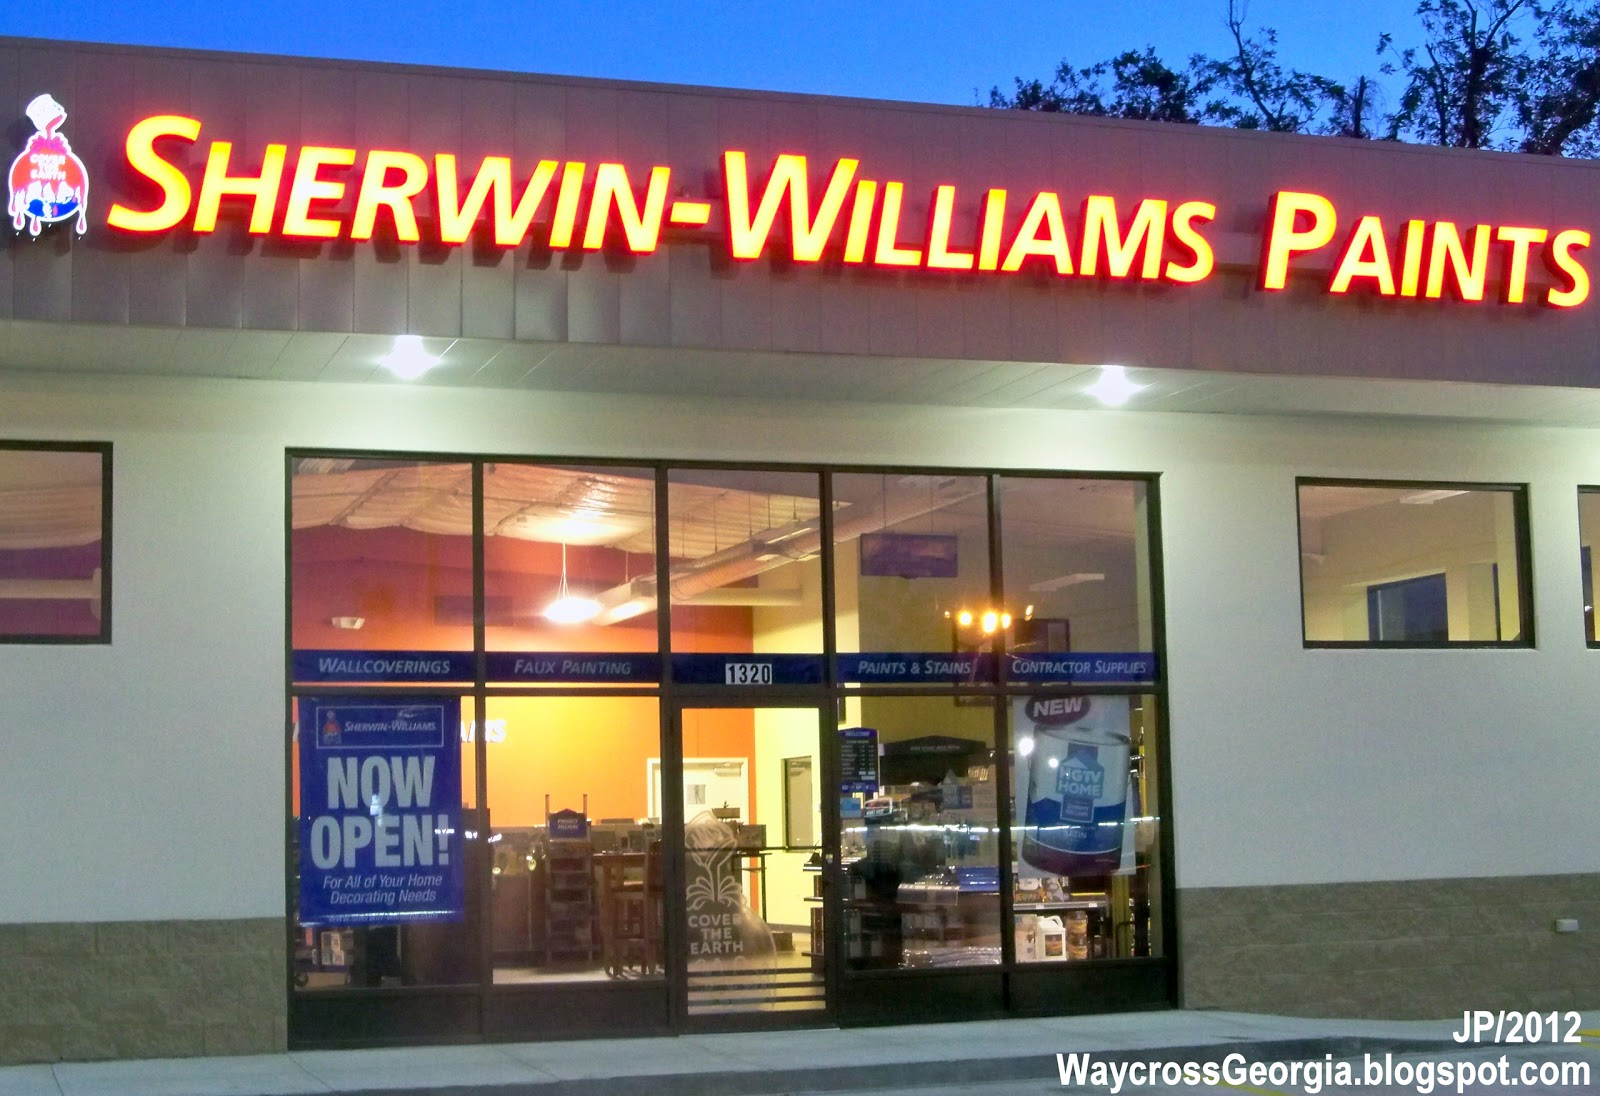 Waycross georgia ware cty college restaurant bank hotel for Sherwin and williams paint